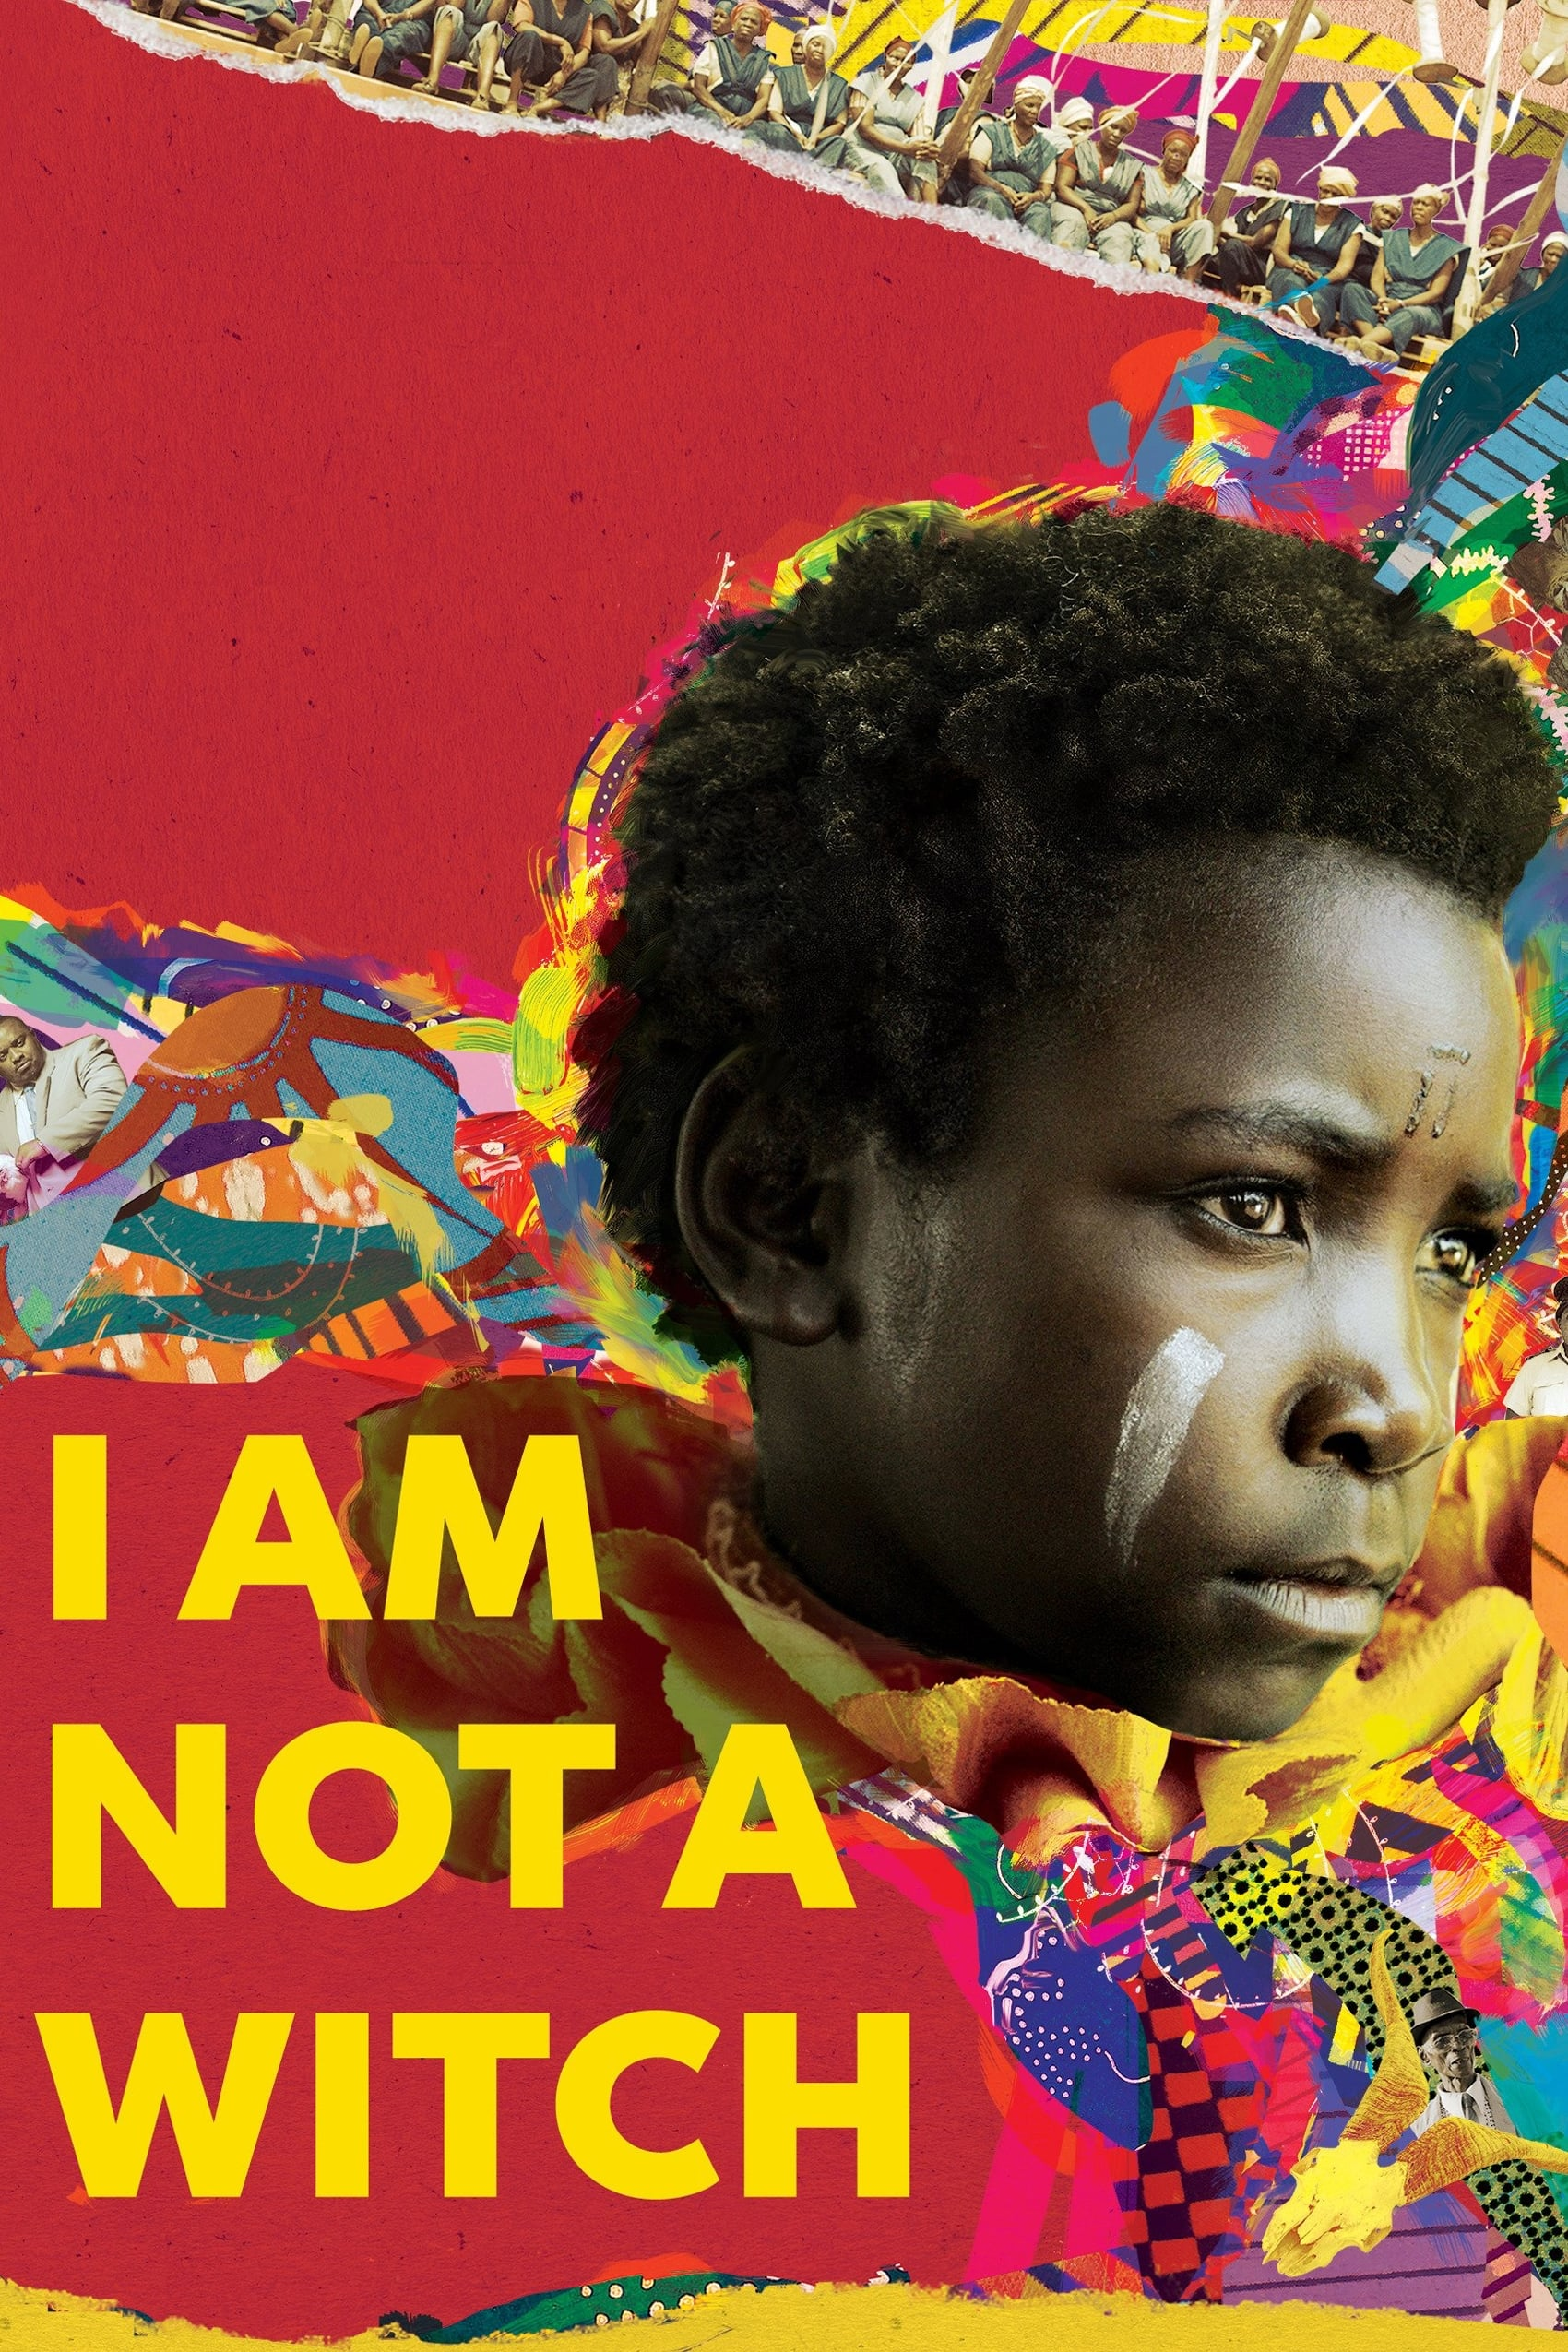 image for I Am Not a Witch